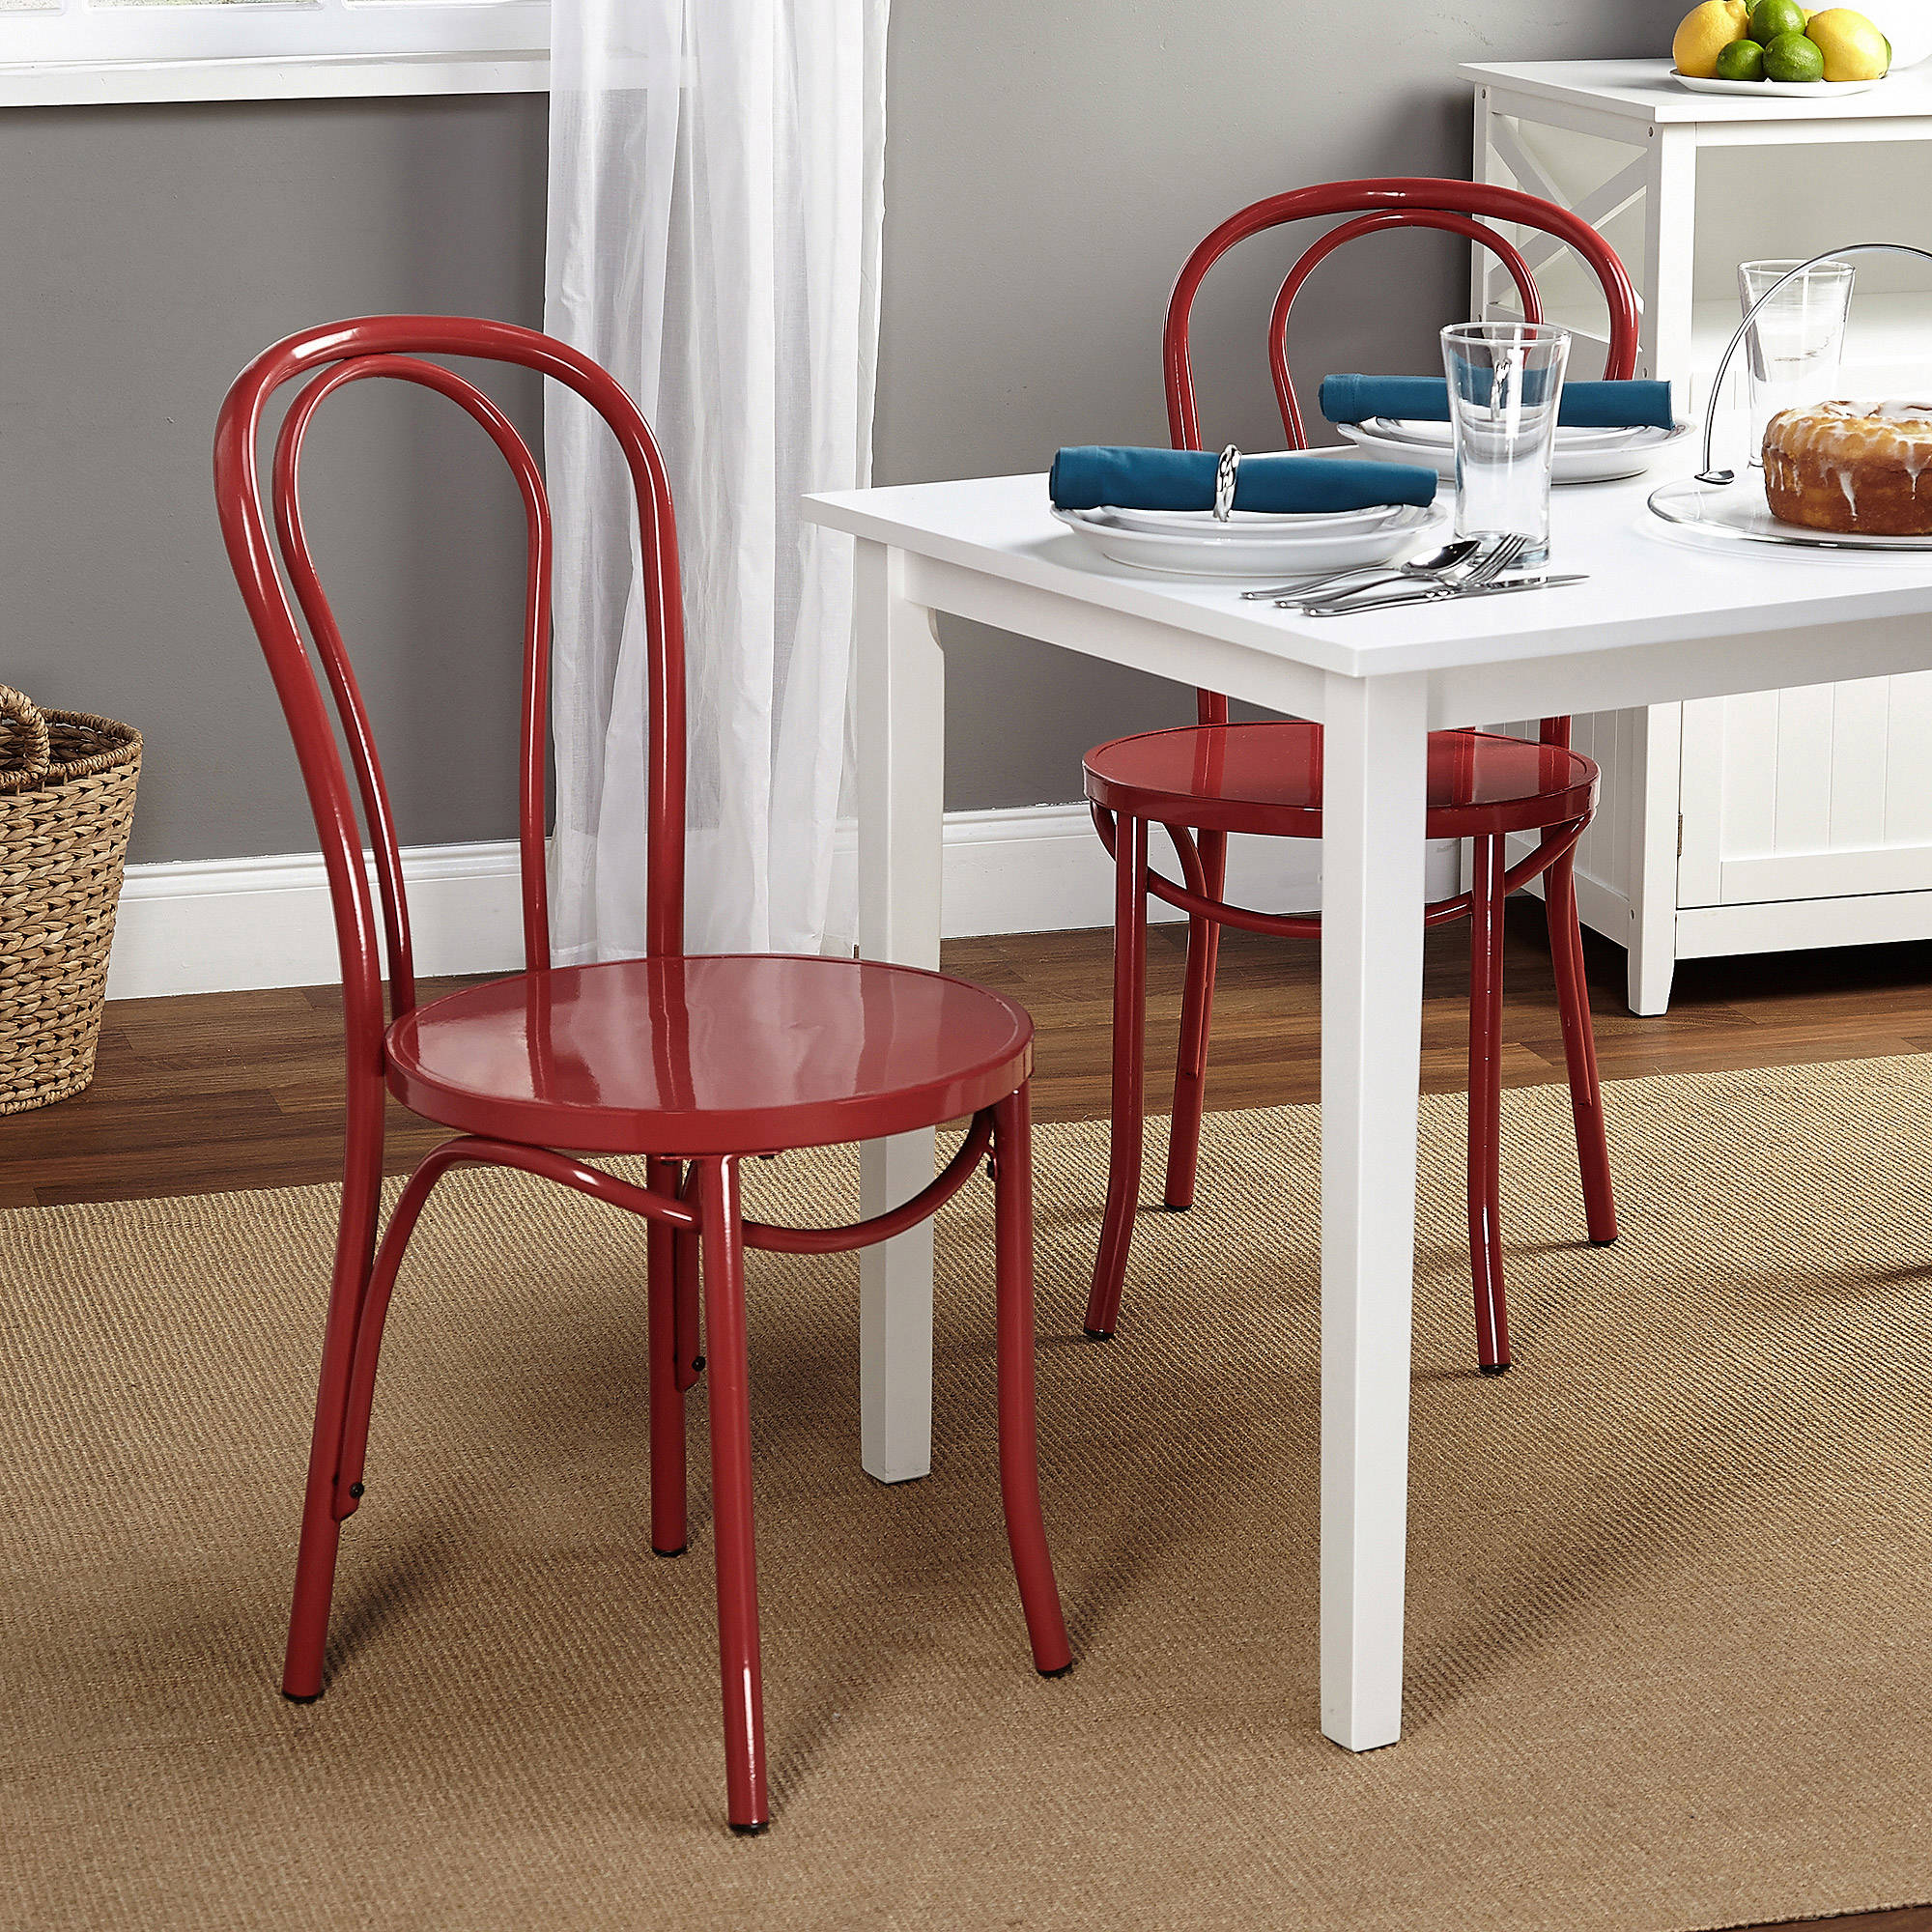 Vintage Inspired Cafe Chair, Set of 2, Multiple Colors